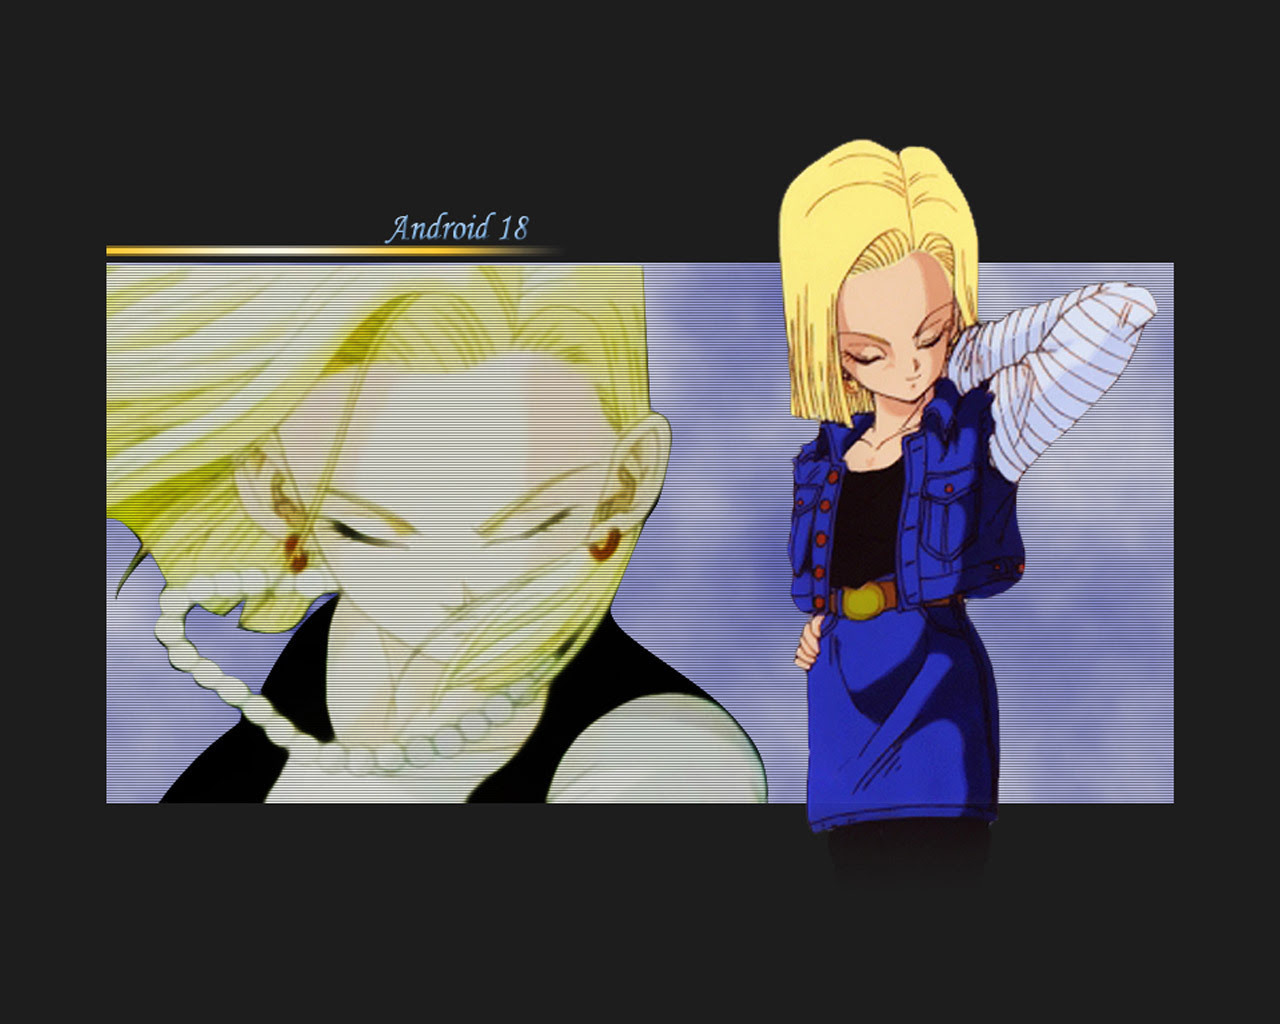 Android 18 Wallpapers Mujeres De Dragon Ball Fondo De Pantalla